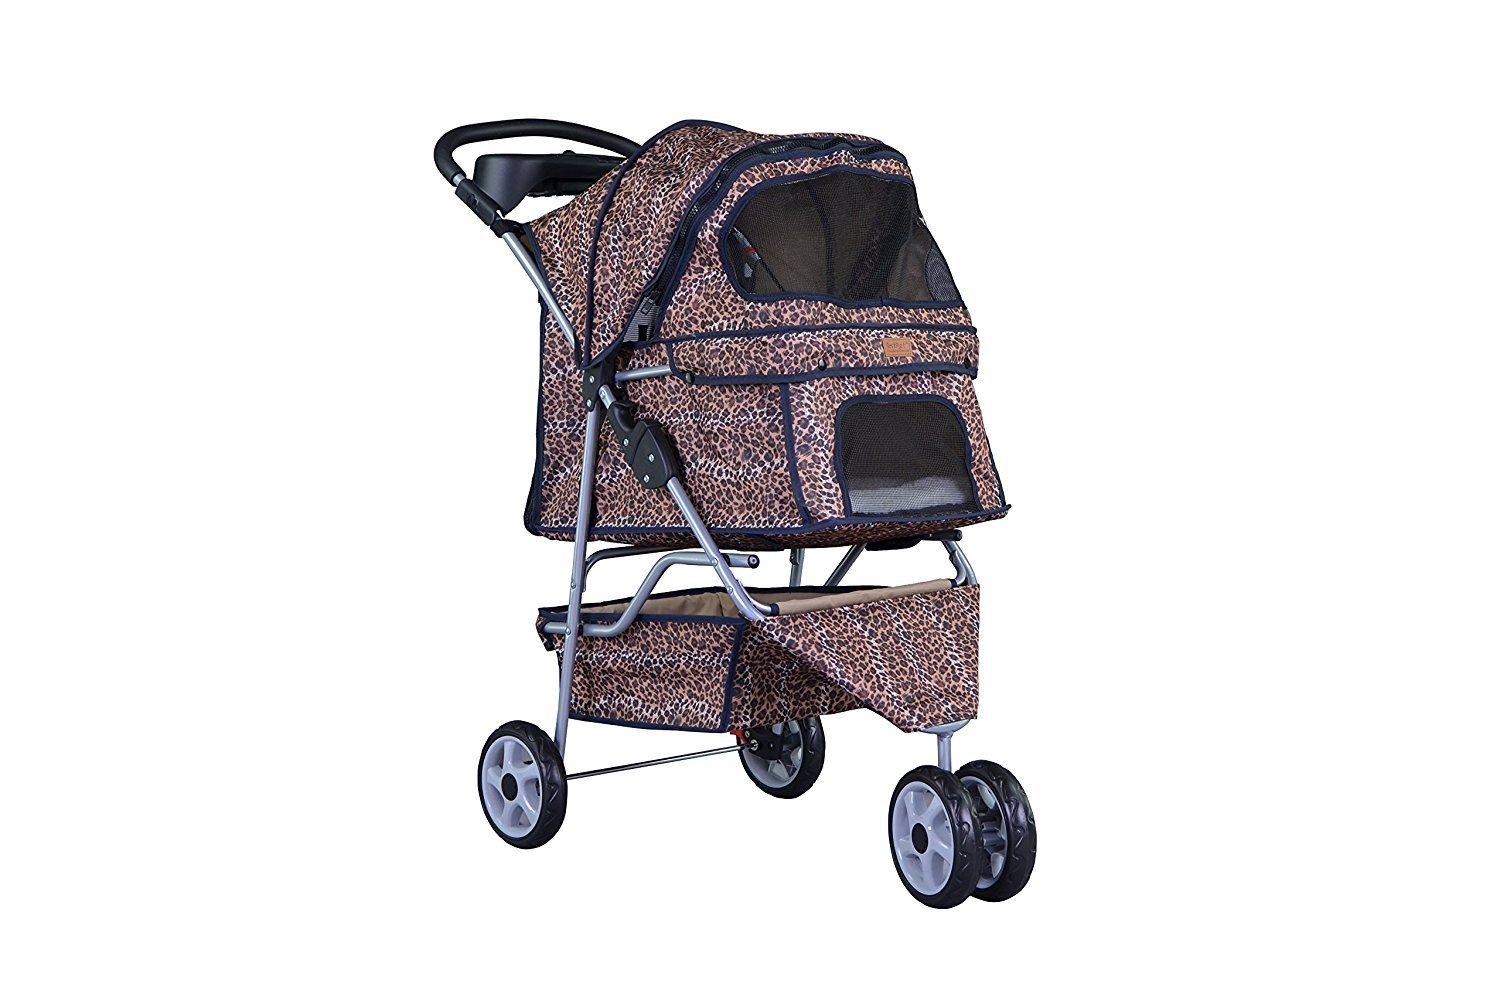 All Terrain Extra Wide Leopard Skin 3 Wheels Pet Dog Cat Stroller w/RainCover by BestPet (Image #1)